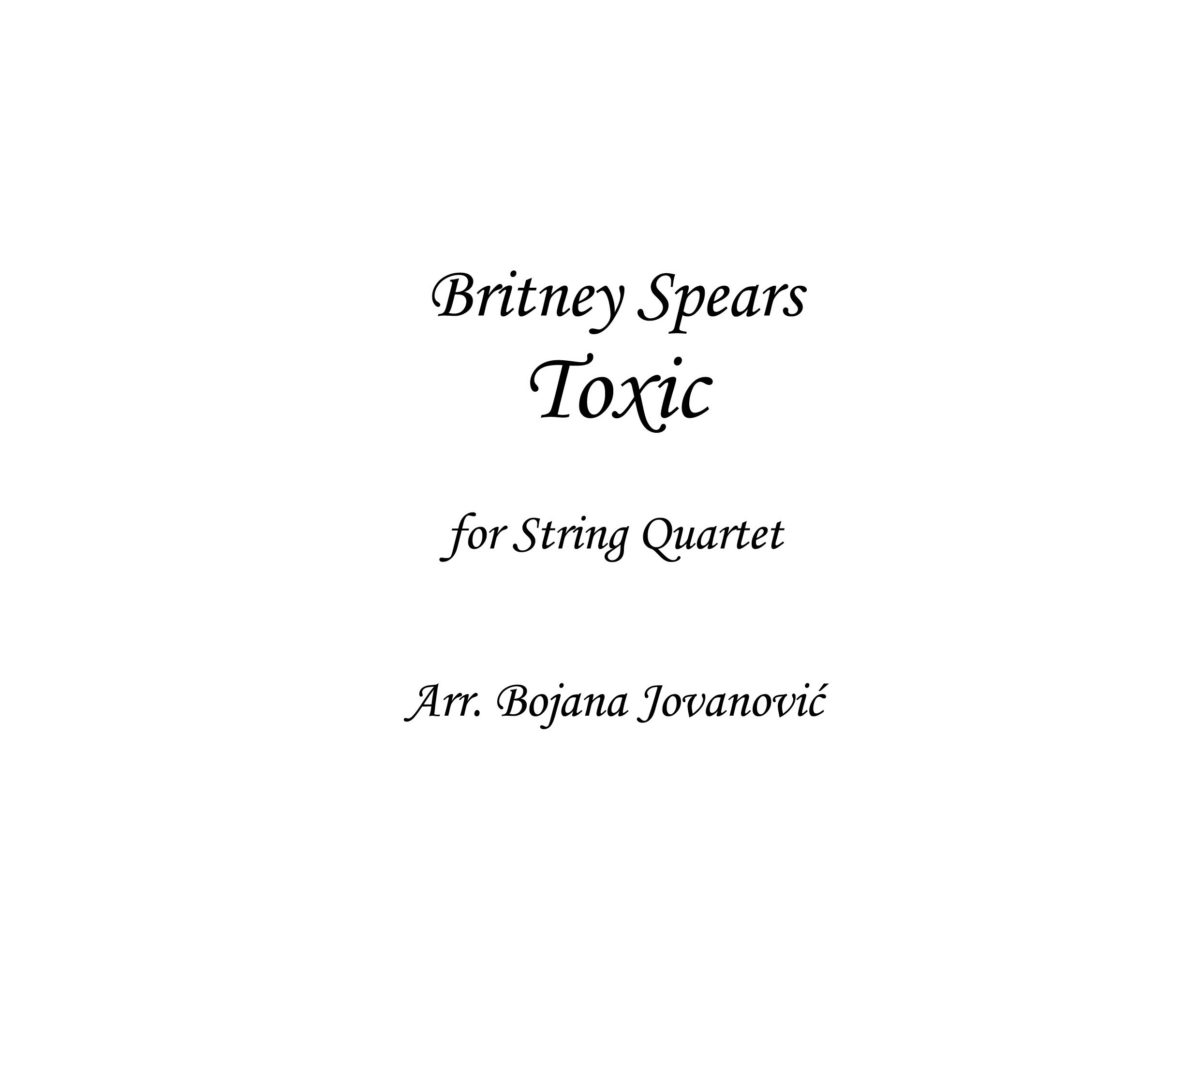 Toxic (Britney Spears) - Sheet Music